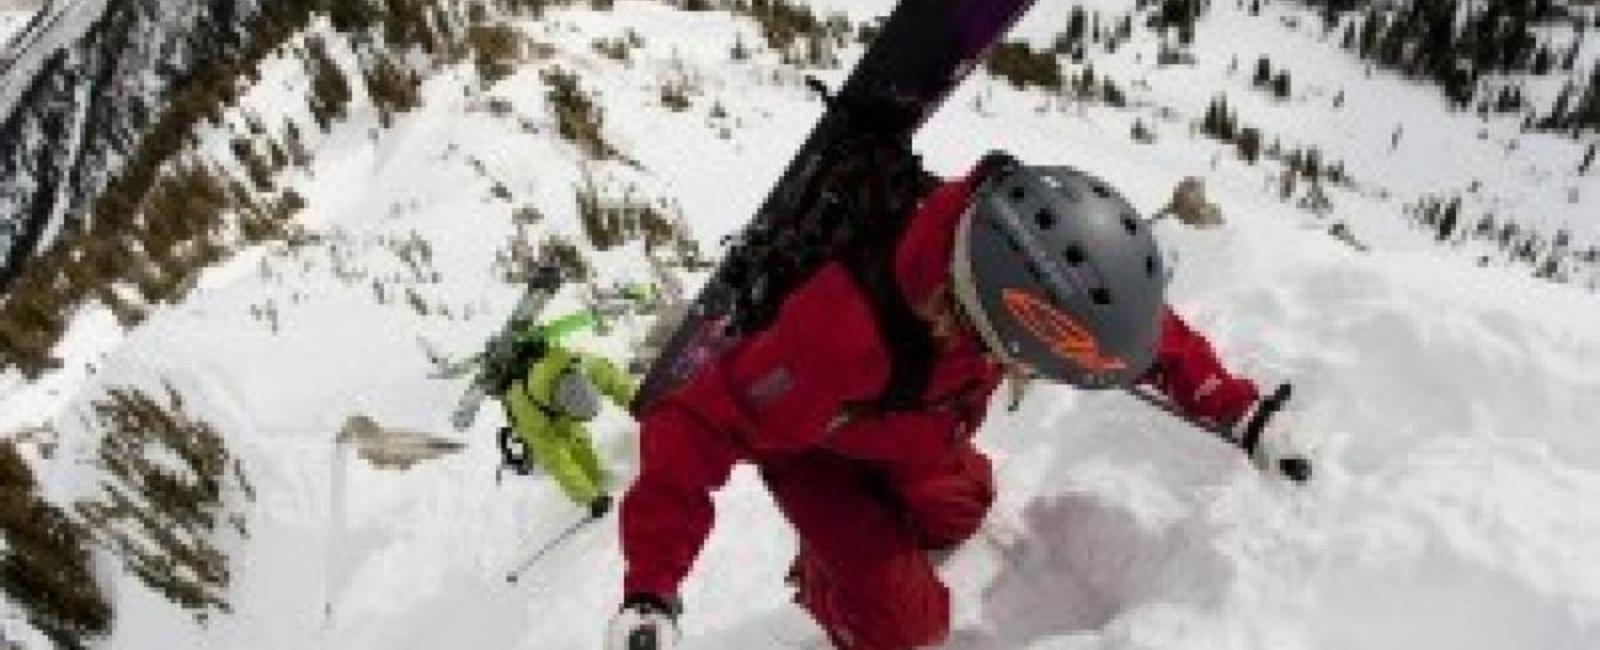 Learn a Snow Sport Month - Powder Mountain